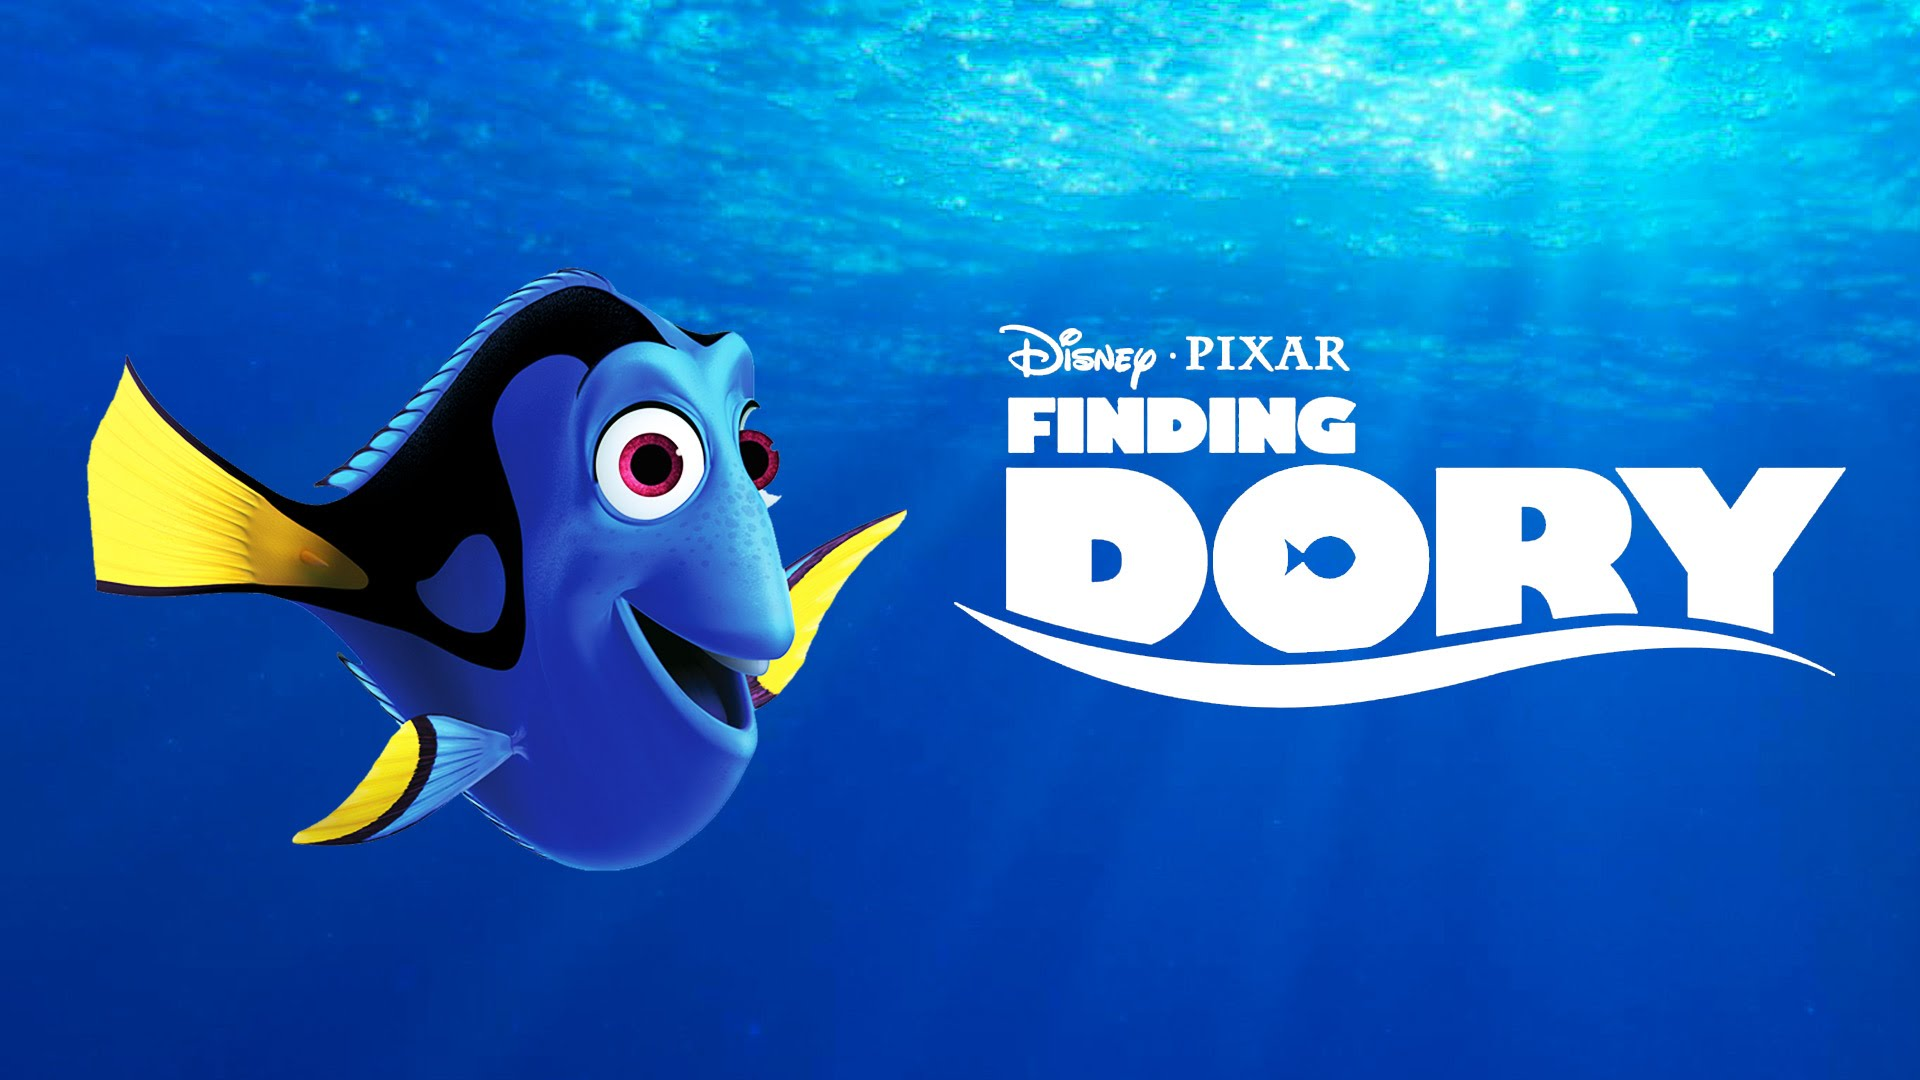 Finding Dory Wallpapers High Resolution and Quality Download